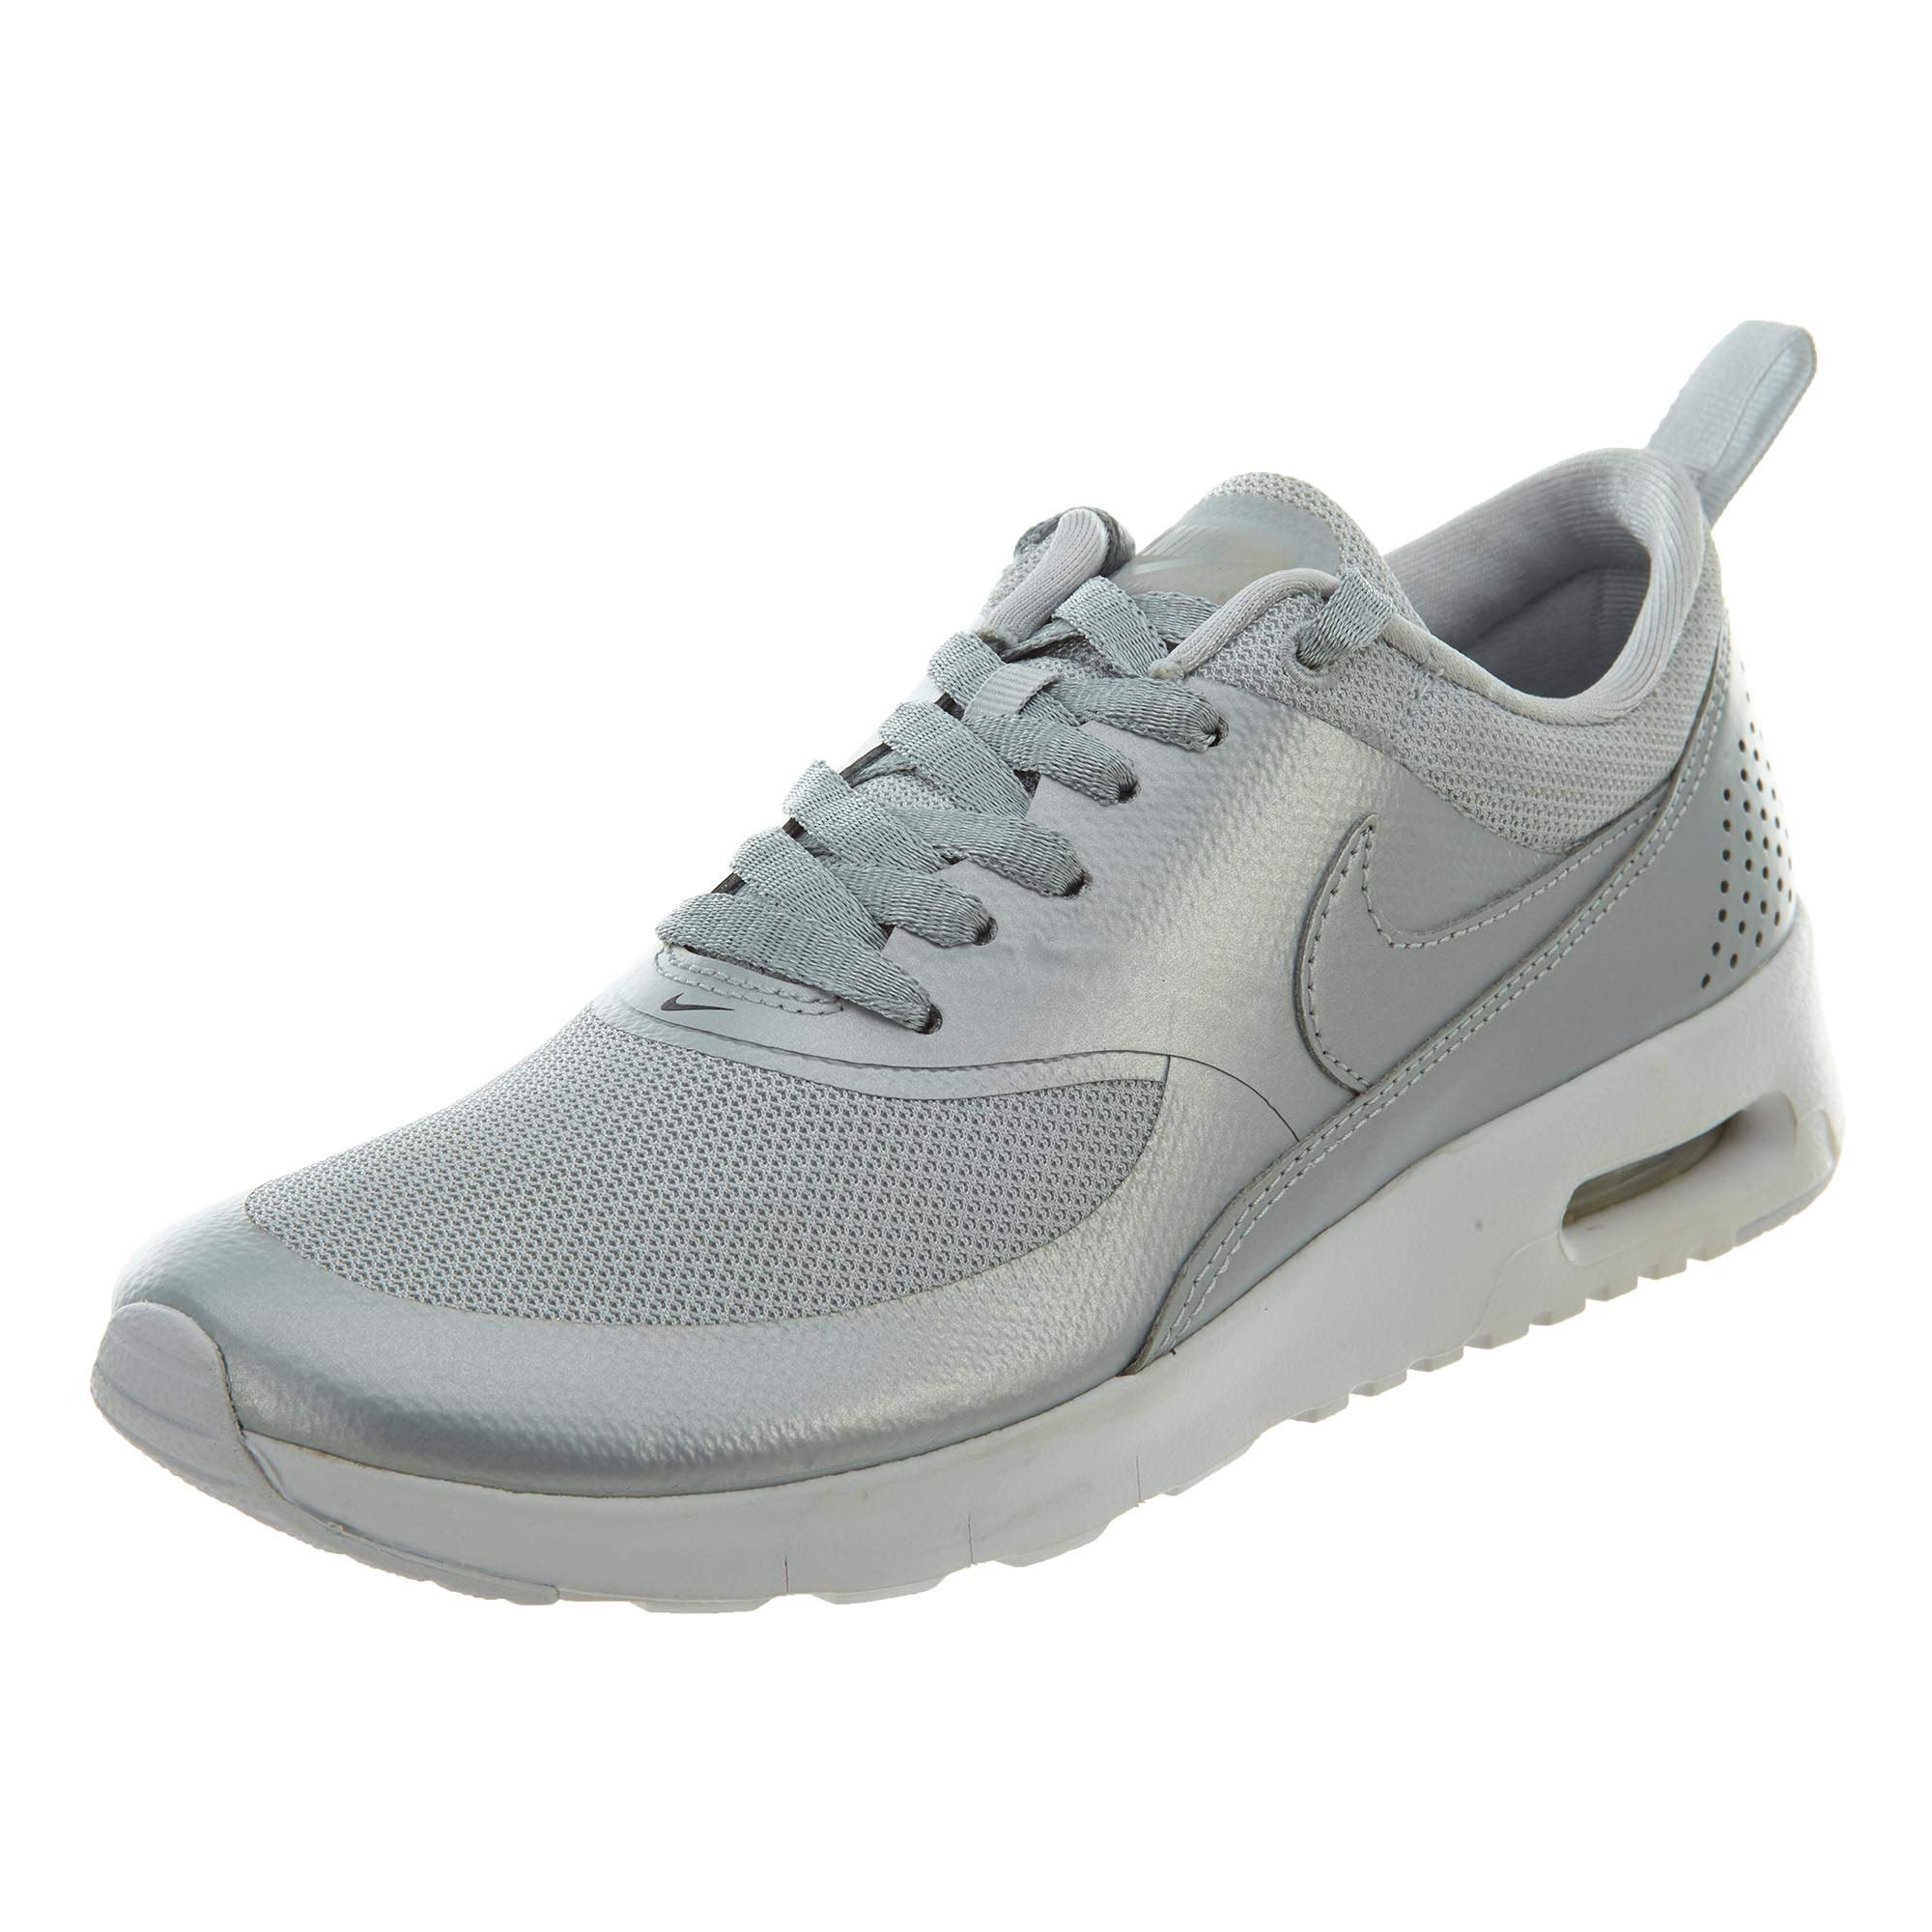 c509f58aa2 Galleon - Nike Girls Air Max Thea Metallic Platinum/Ankle-High Running Shoe  - 5M